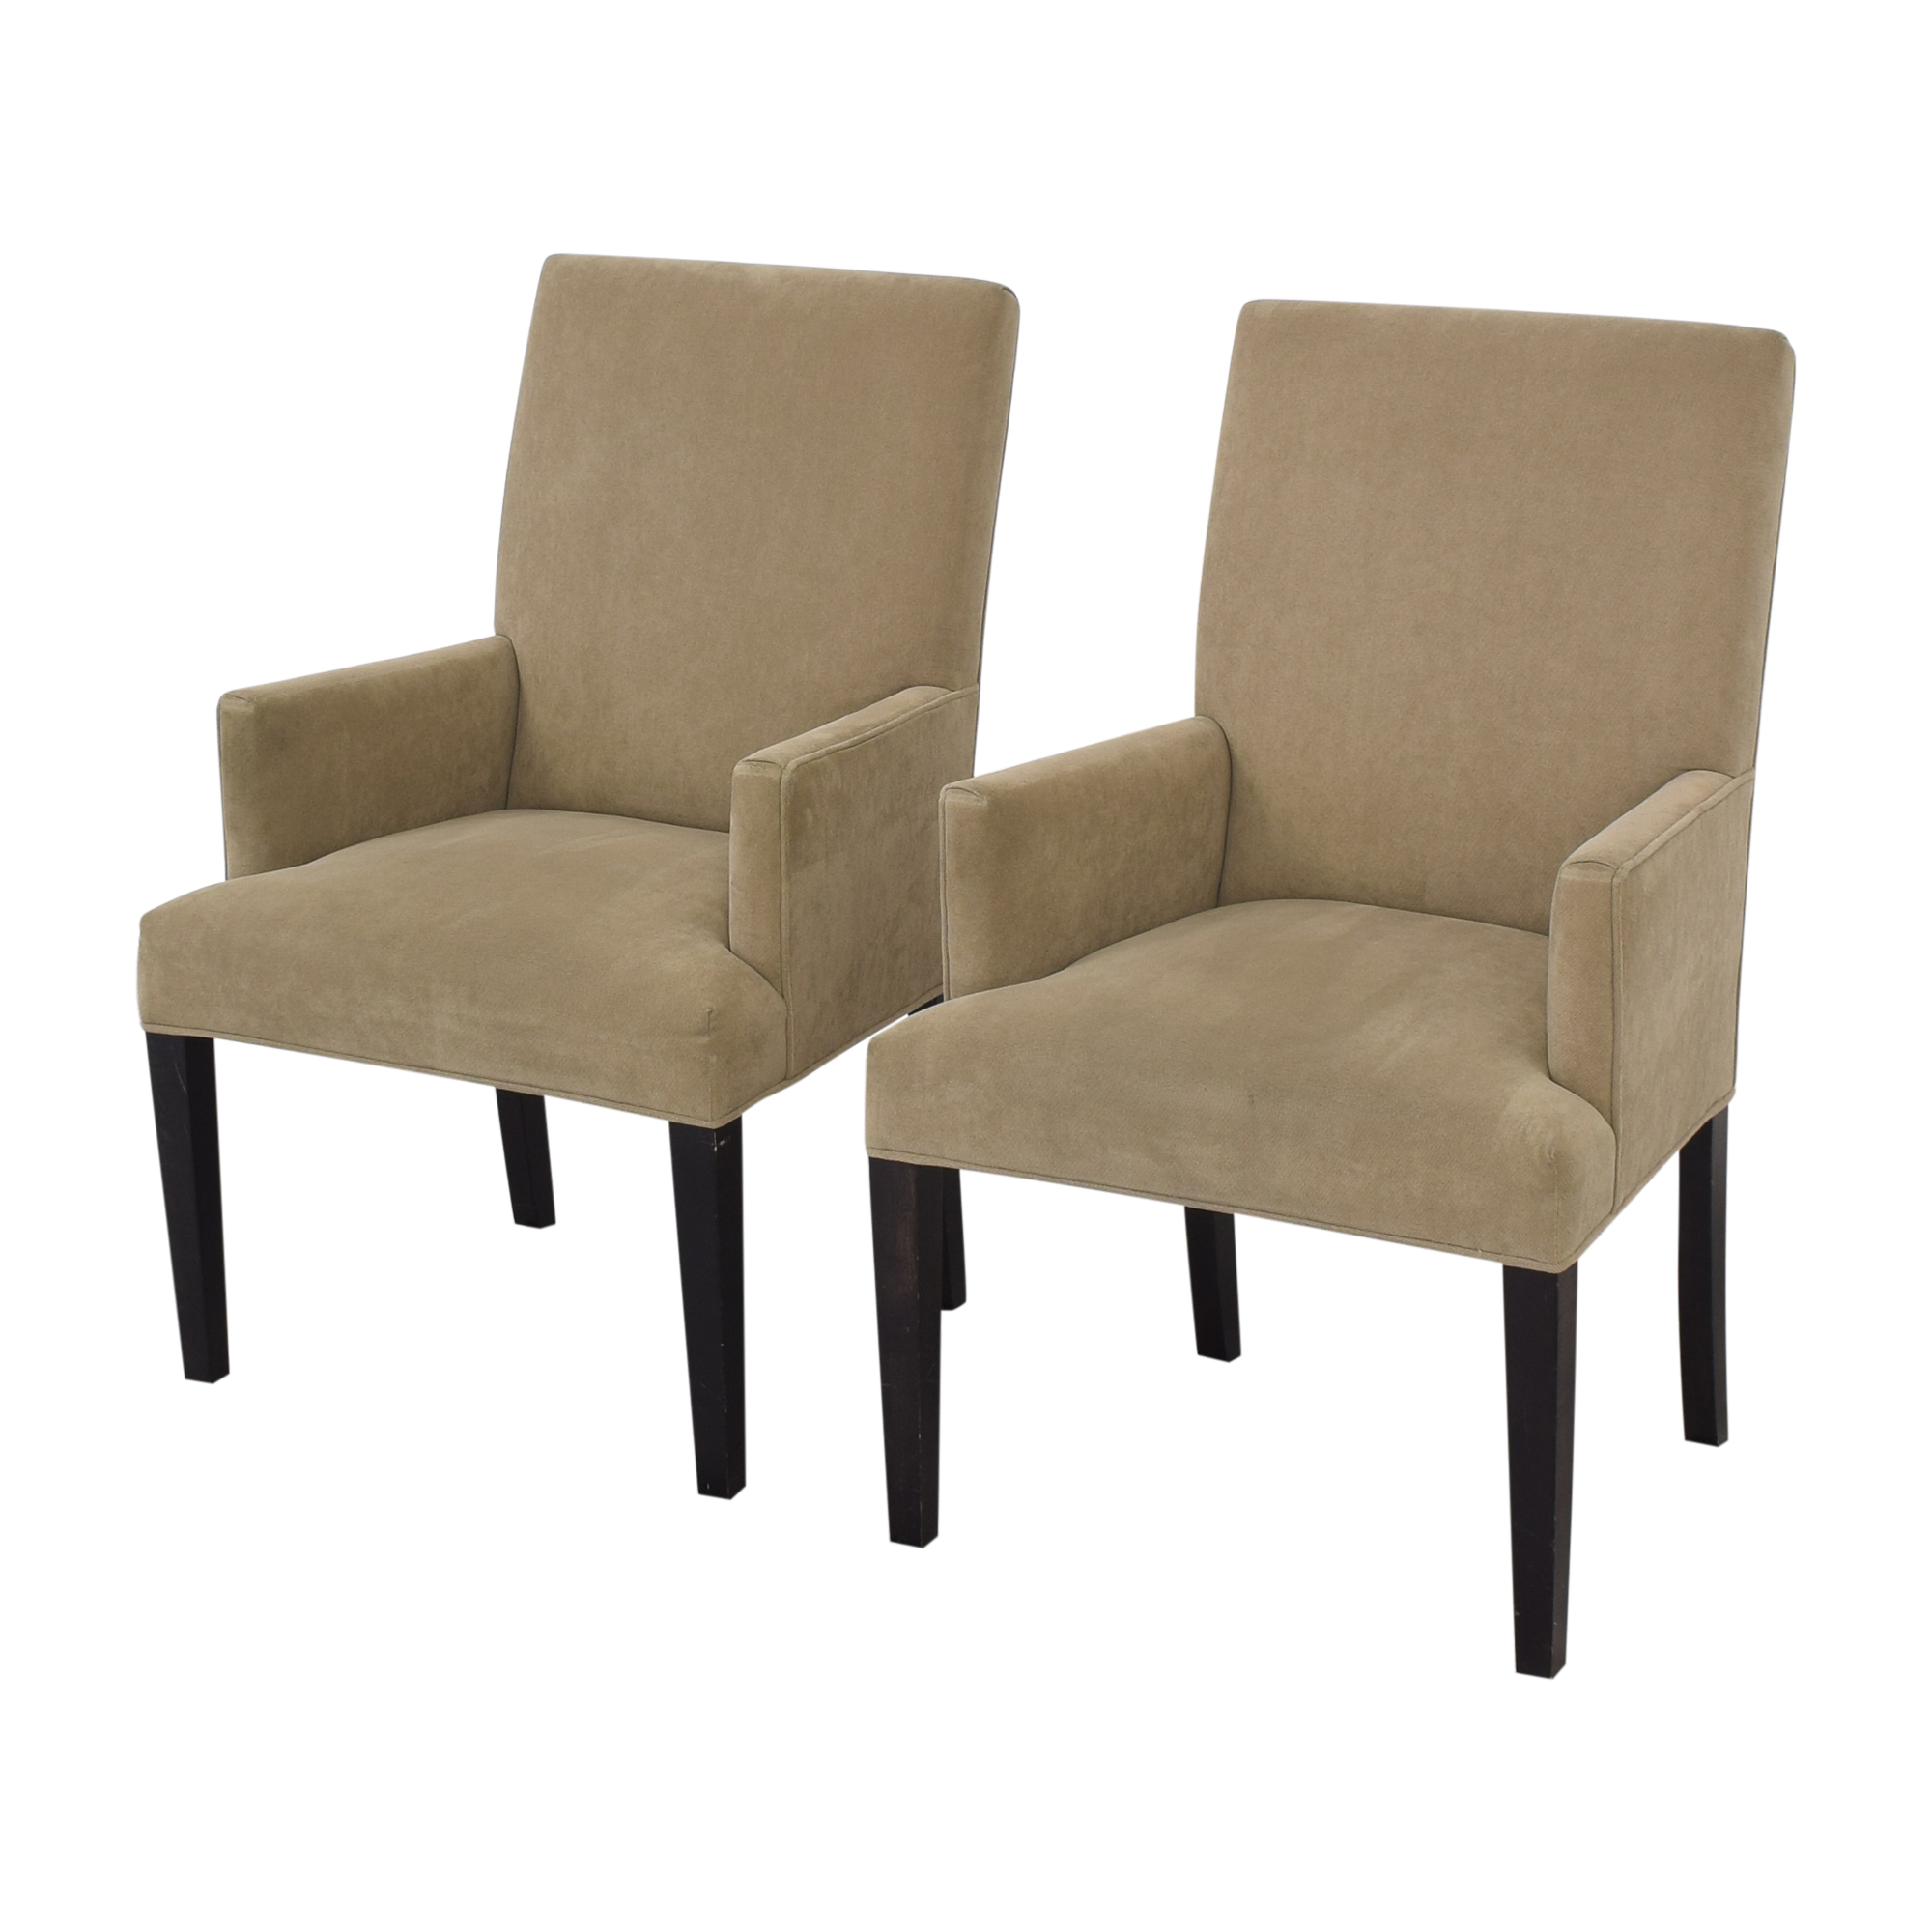 Crate & Barrel Crate & Barrel Upholstered Dining Chairs brown